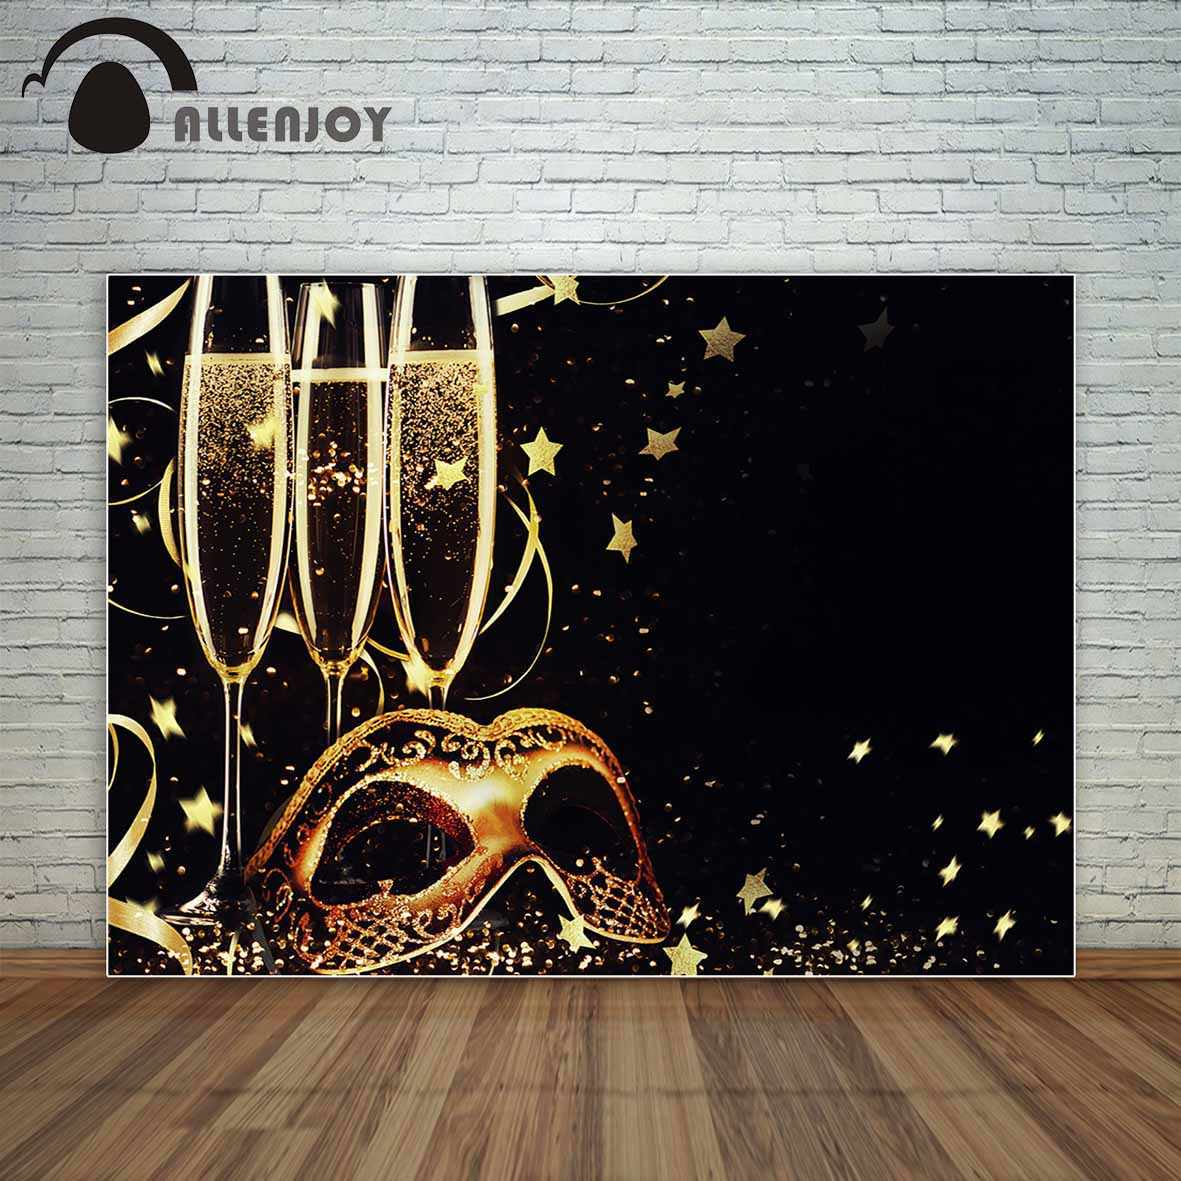 Allenjoy golden and black Masquerade mask and champagne stars and ribbons backdrop background vinyl new photographic backdrops